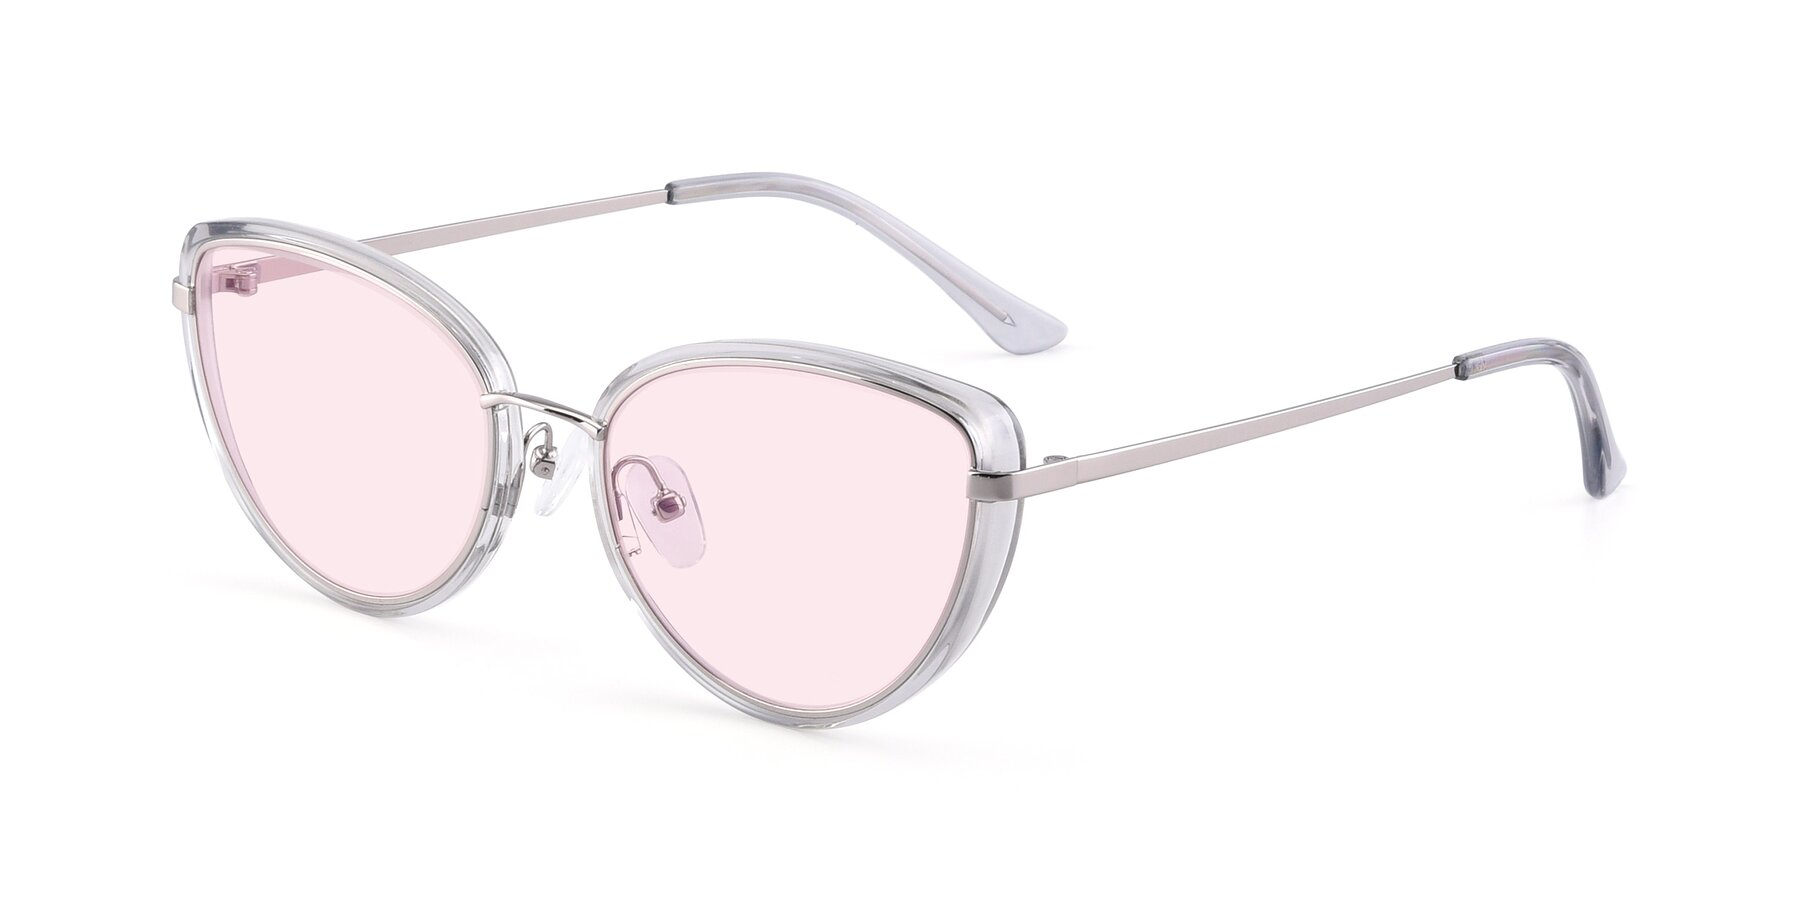 Angle of 17706 in Transparent Grey-Silver with Light Pink Tinted Lenses